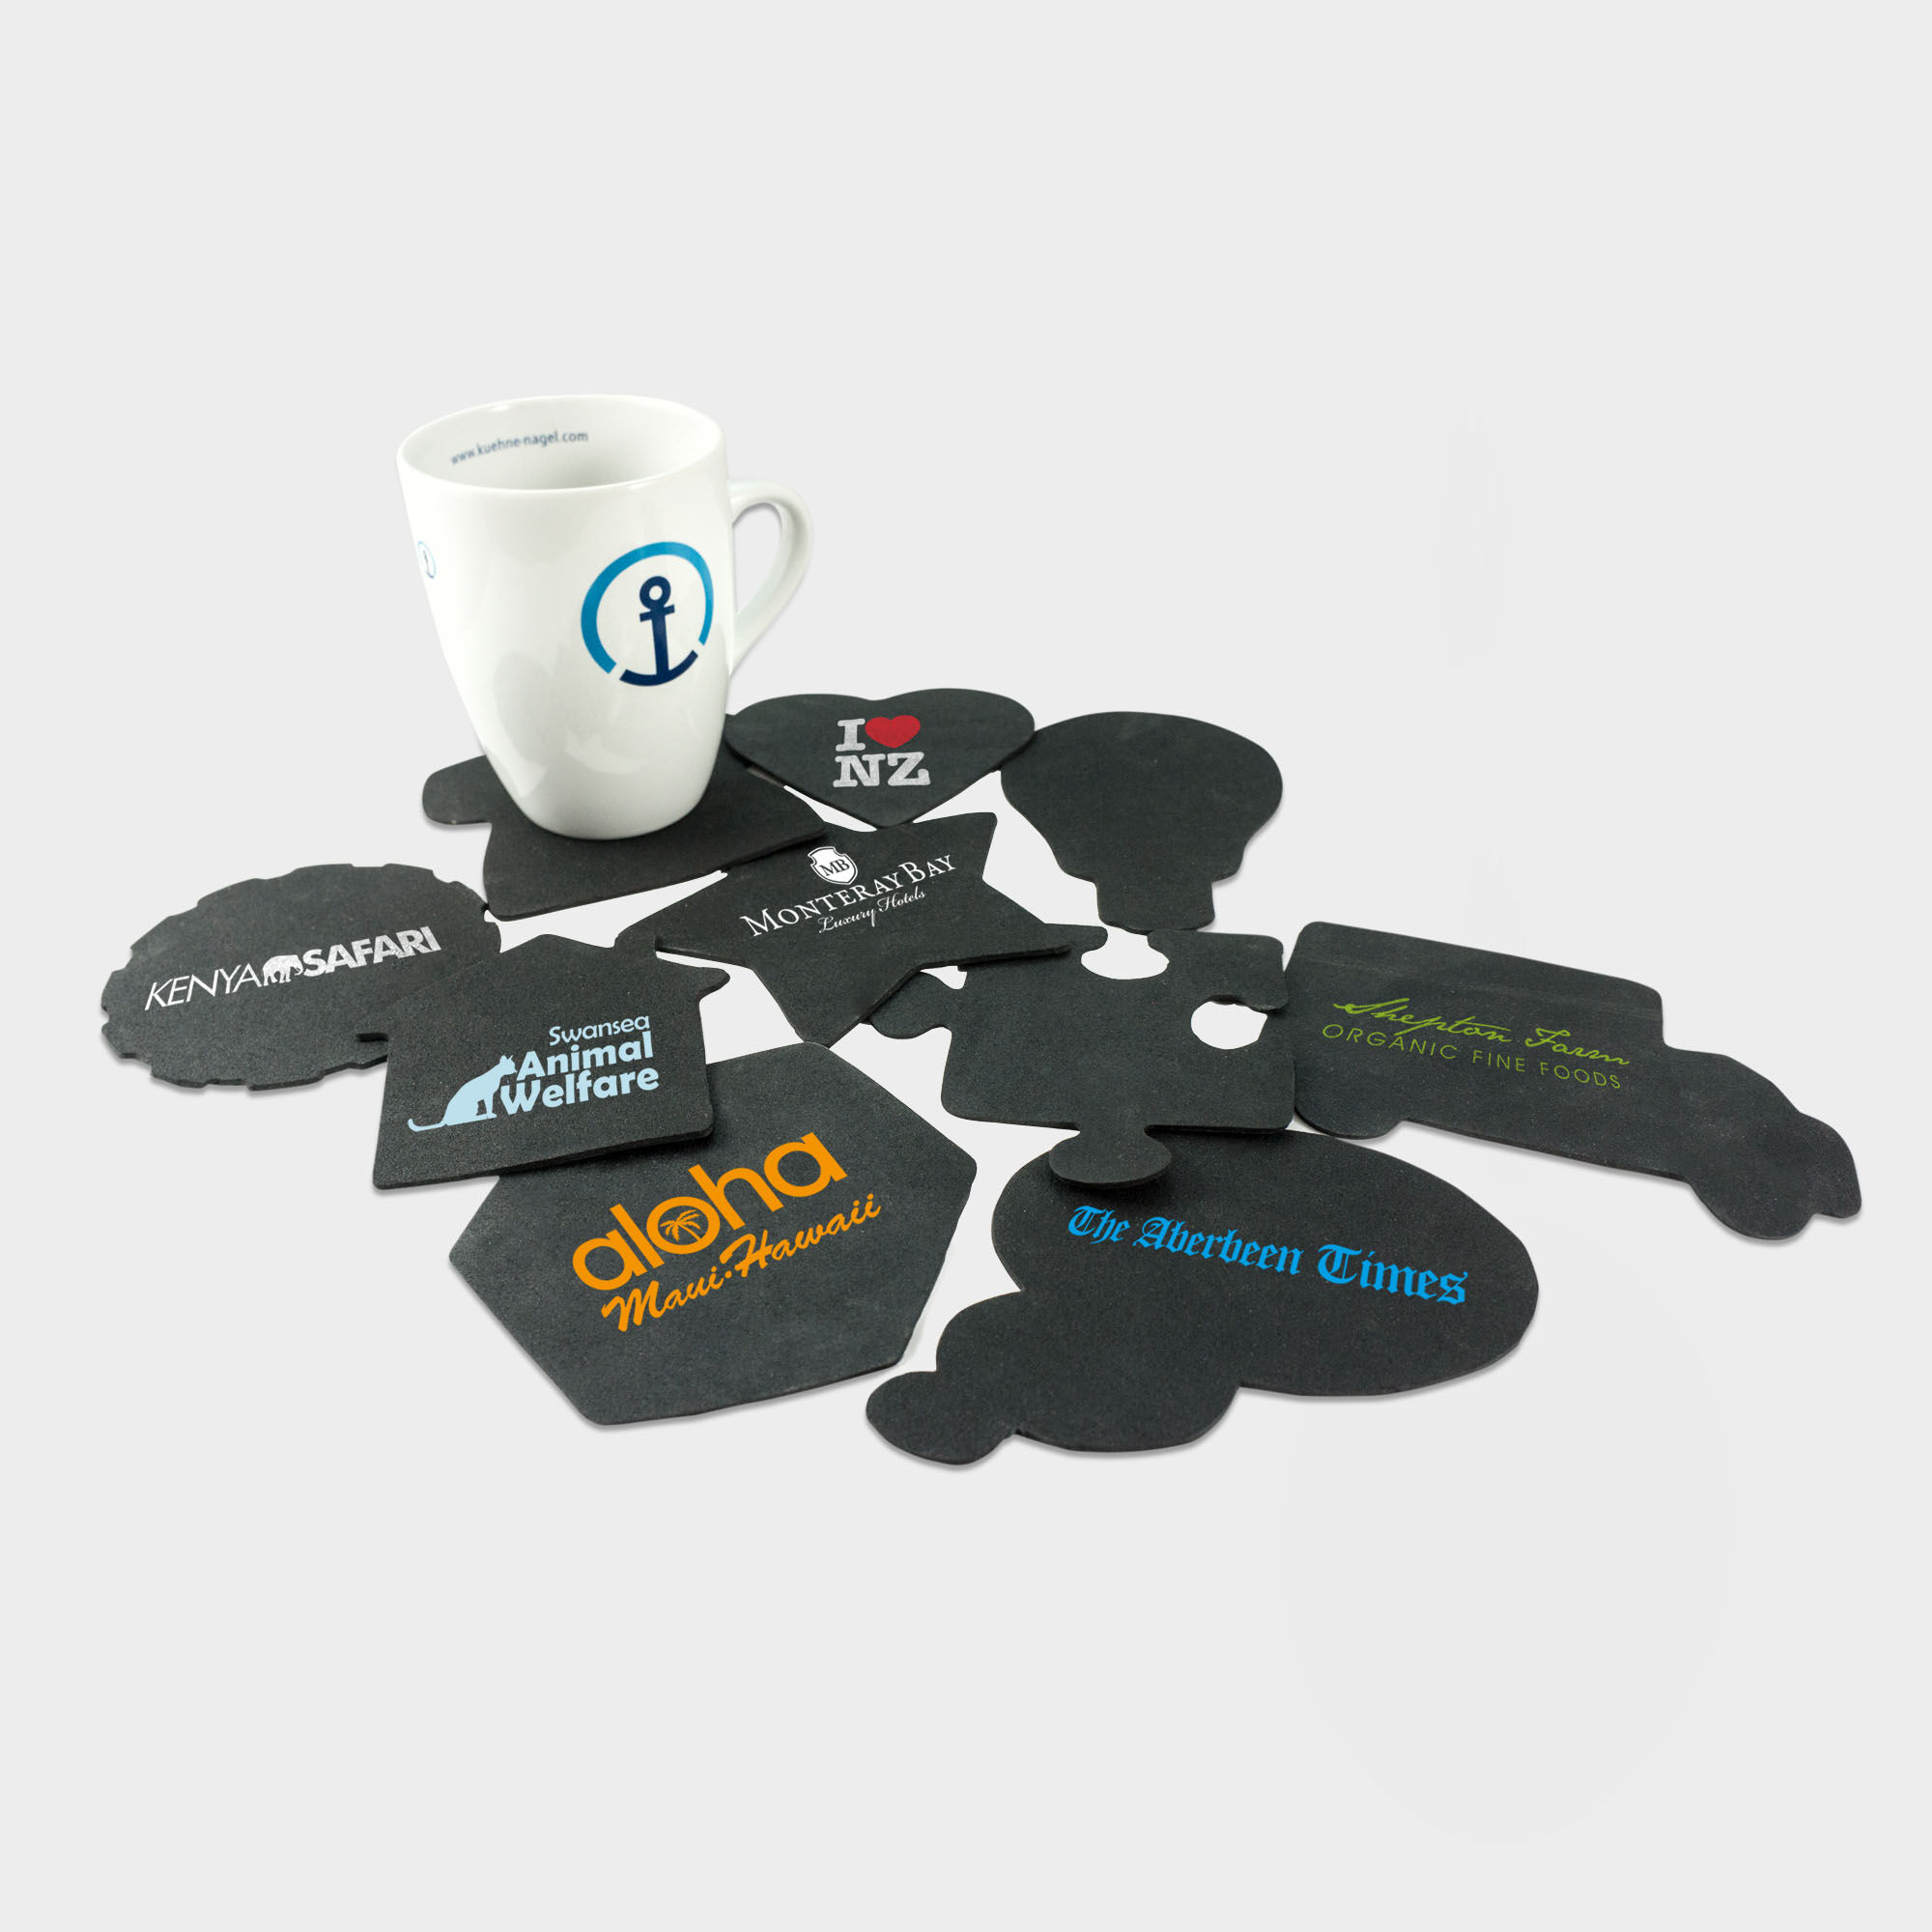 Branded Coasters made from Recycled Tyres